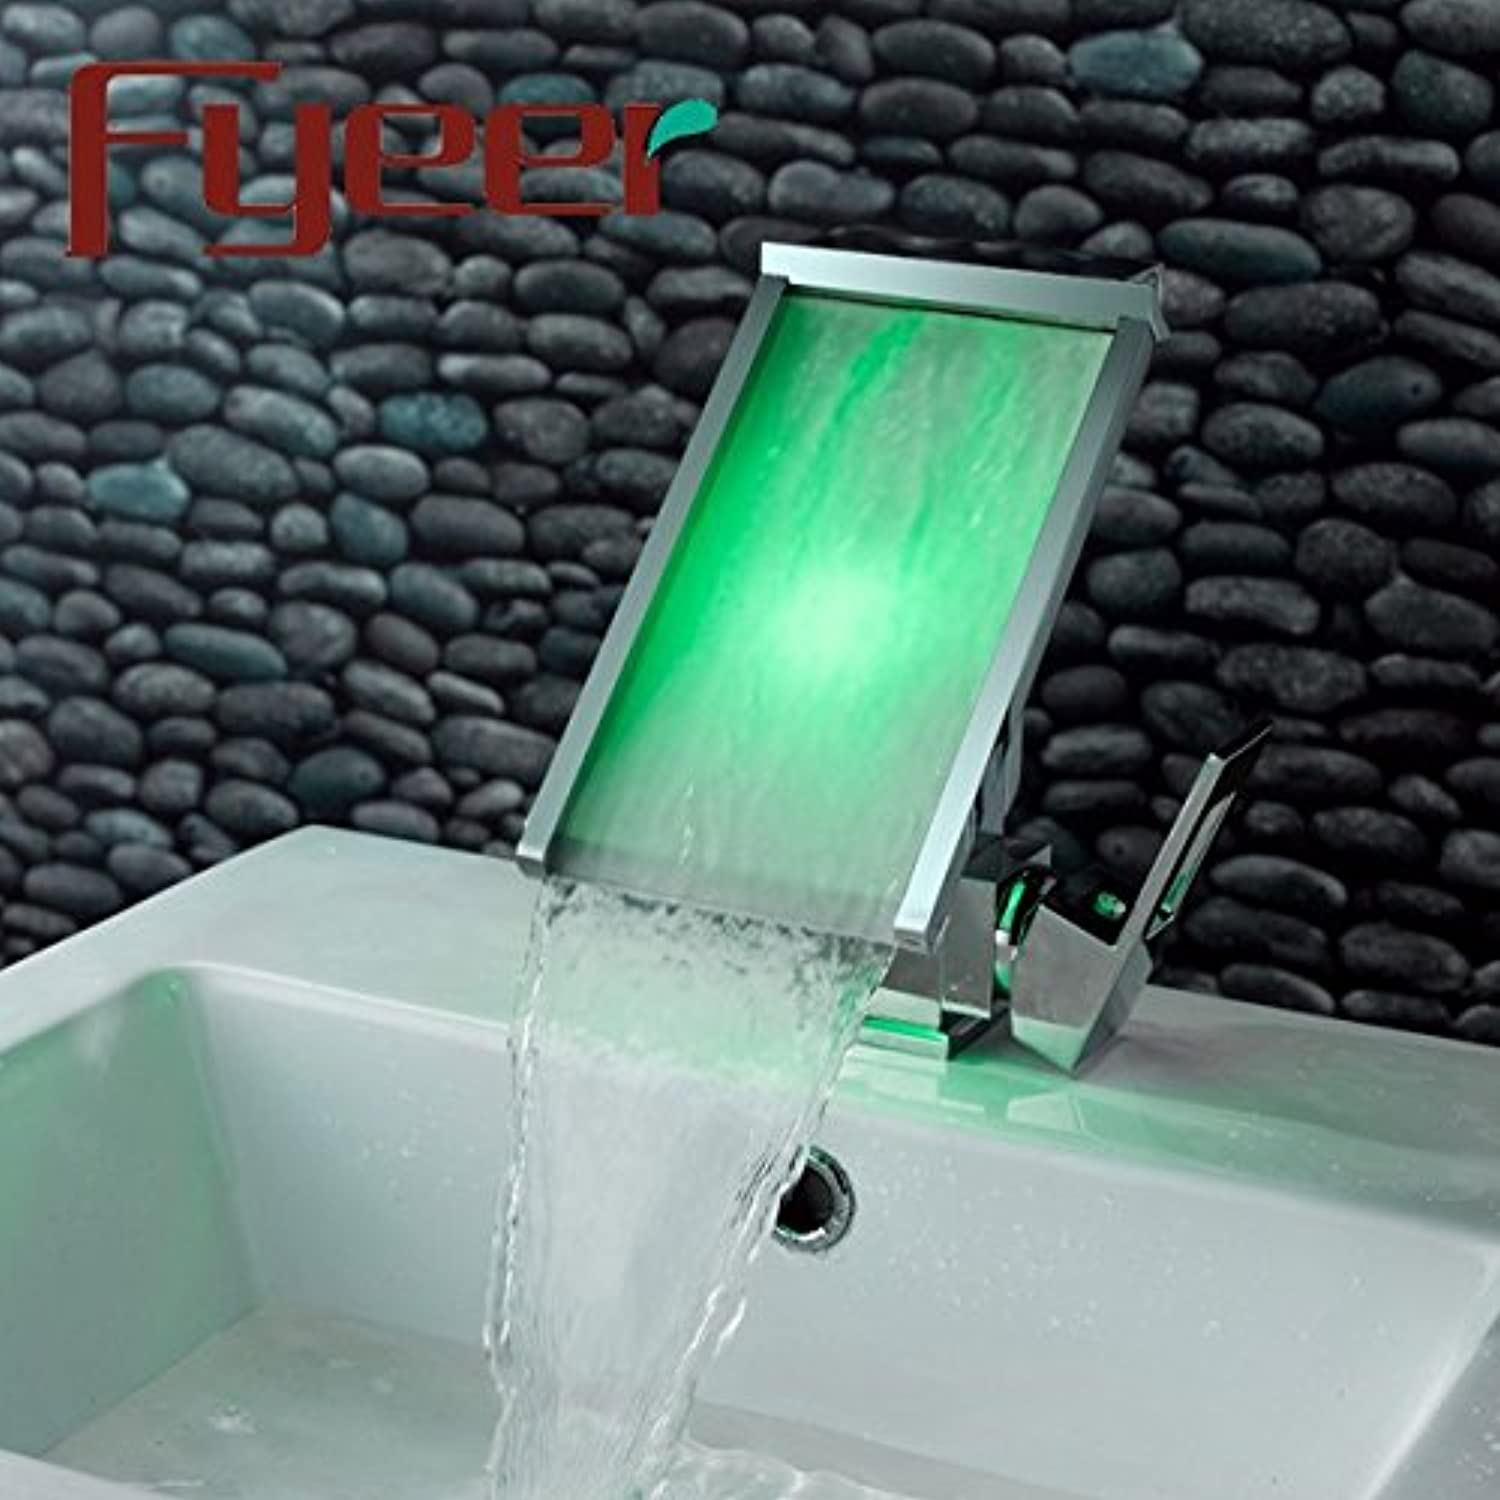 Hlluya Professional Sink Mixer Tap Kitchen Faucet The waterfall faucet temperature control ld light water warm glowing waterfall faucet Mixer Taps